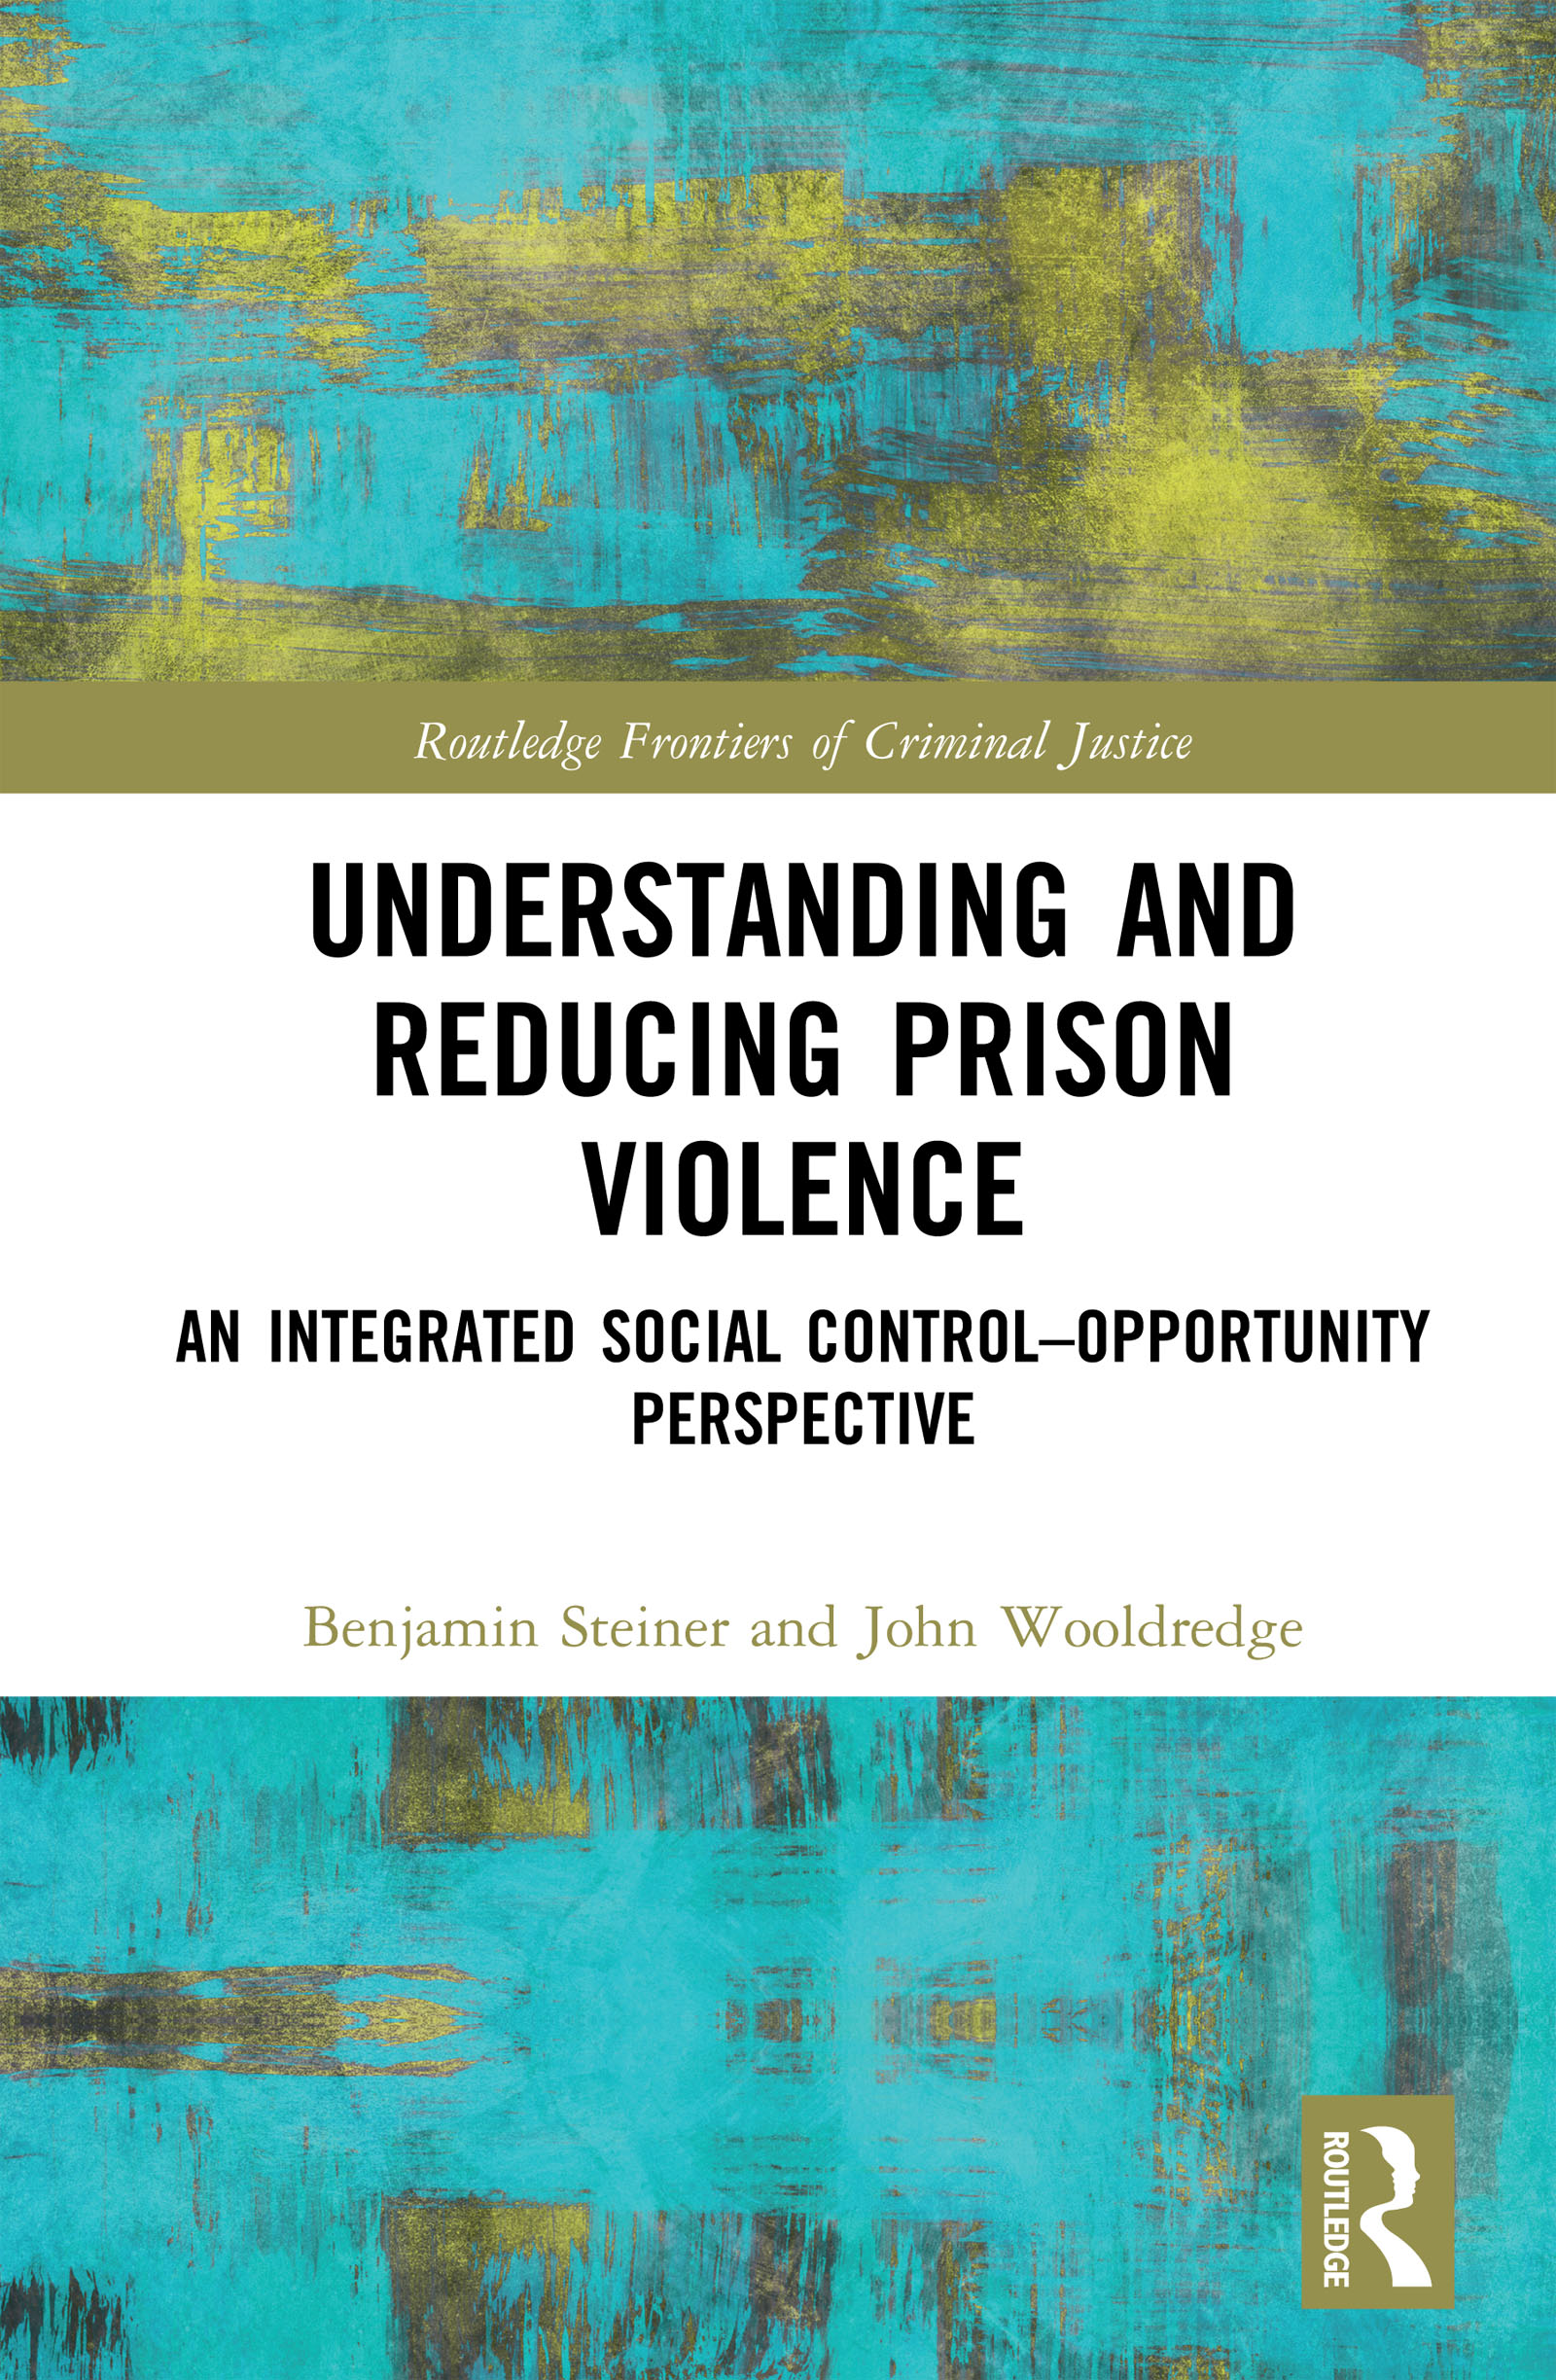 Understanding and Reducing Prison Violence: An Integrated Social Control-Opportunity Perspective book cover